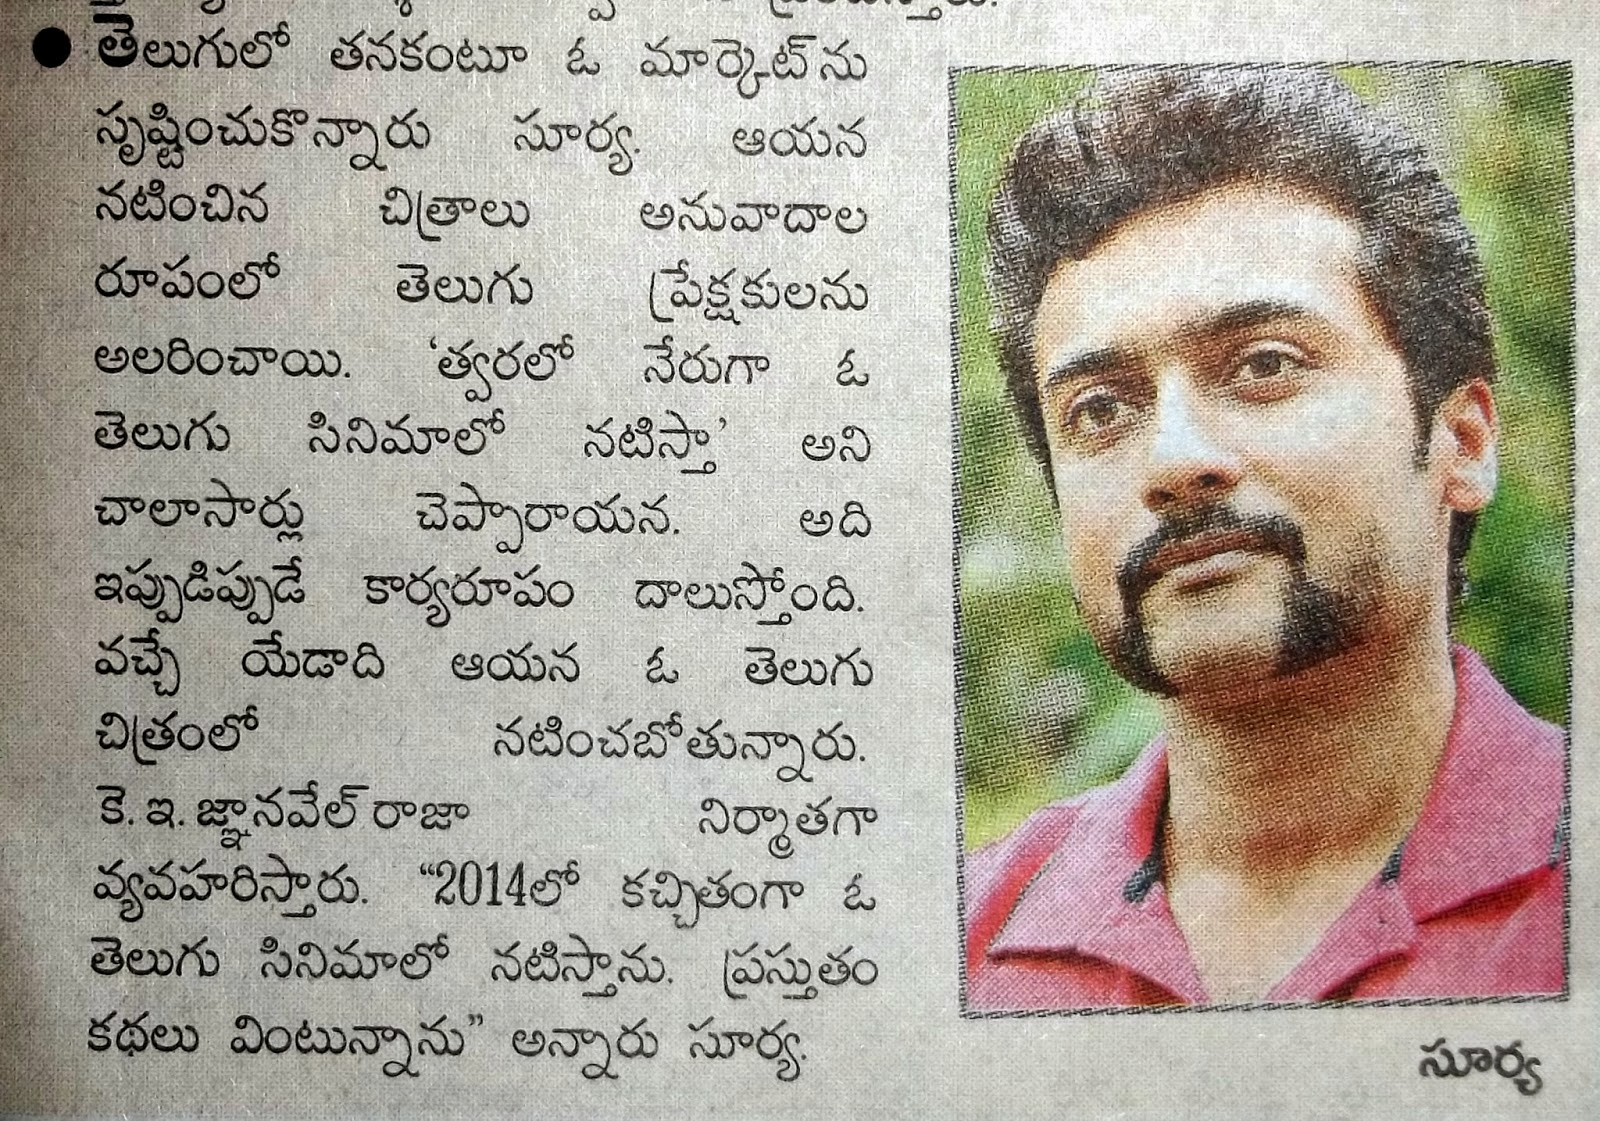 Surya direct telugu movie to be release in 2014 actor surya masss surya direct telugu movie to be release in 2014 altavistaventures Images